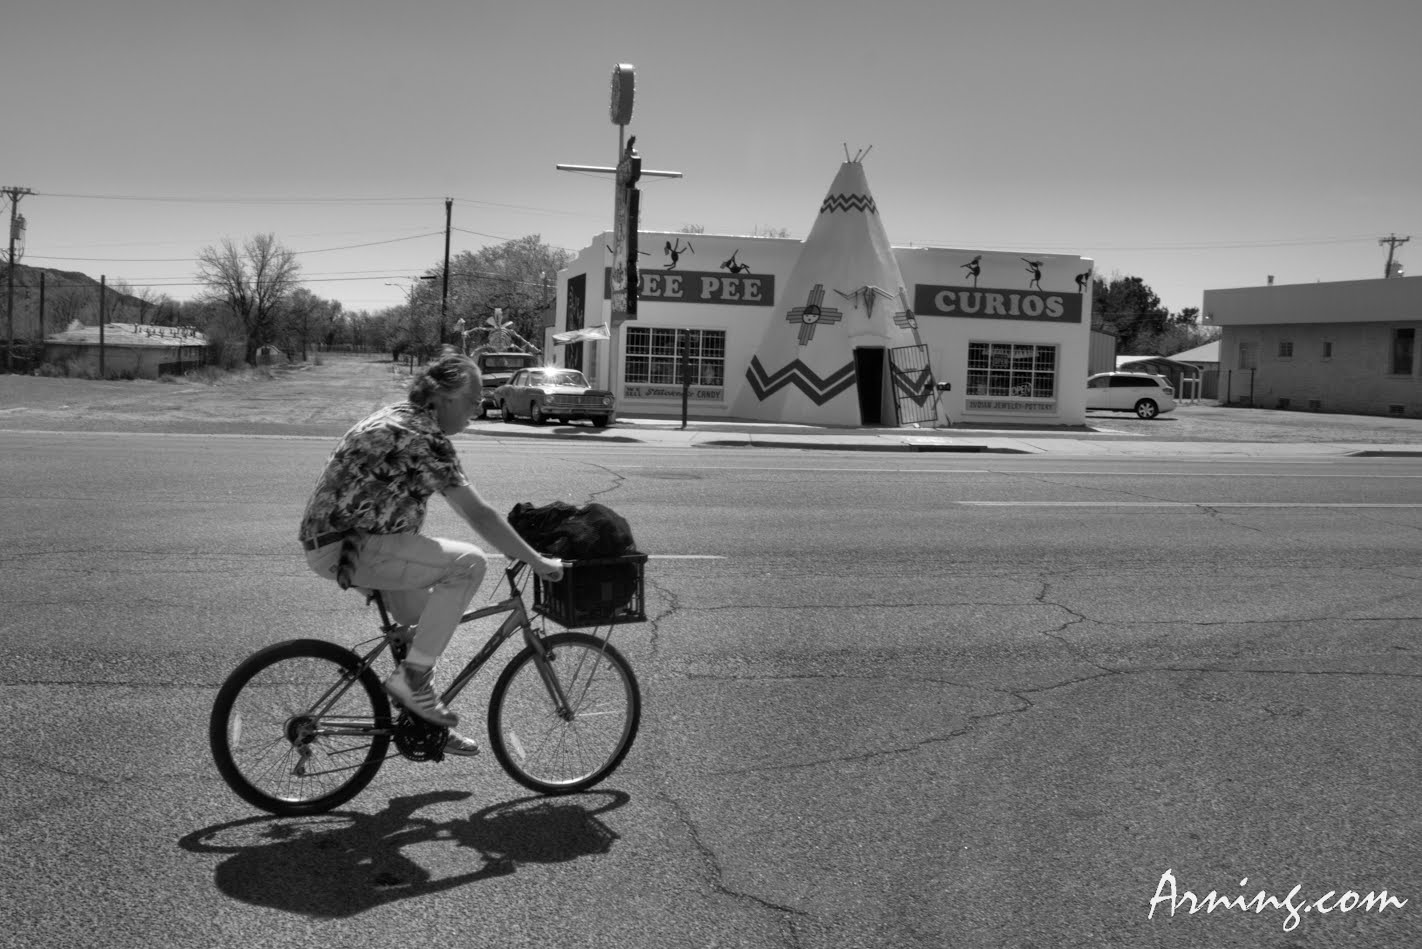 Riding on the old Route 66 in Tucumcari, NM